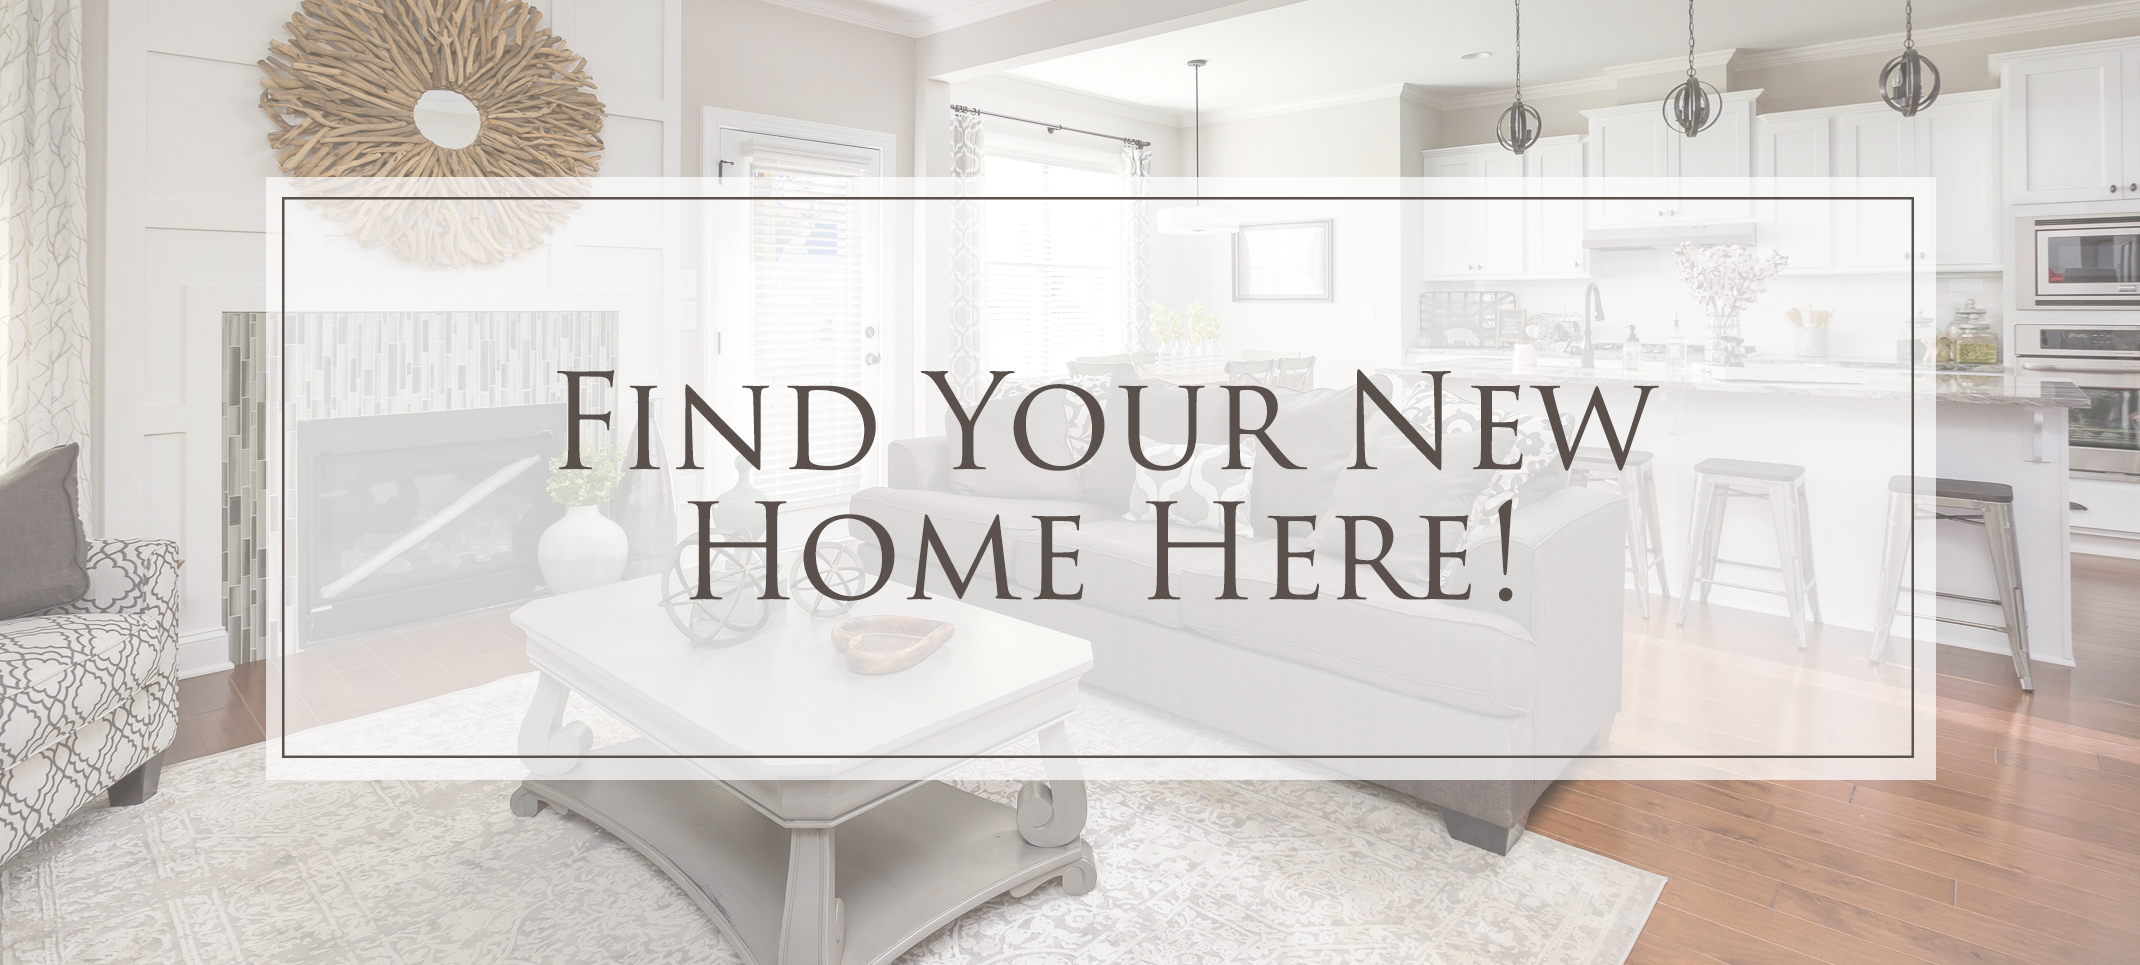 new homes in the raleigh are f ind your home text here